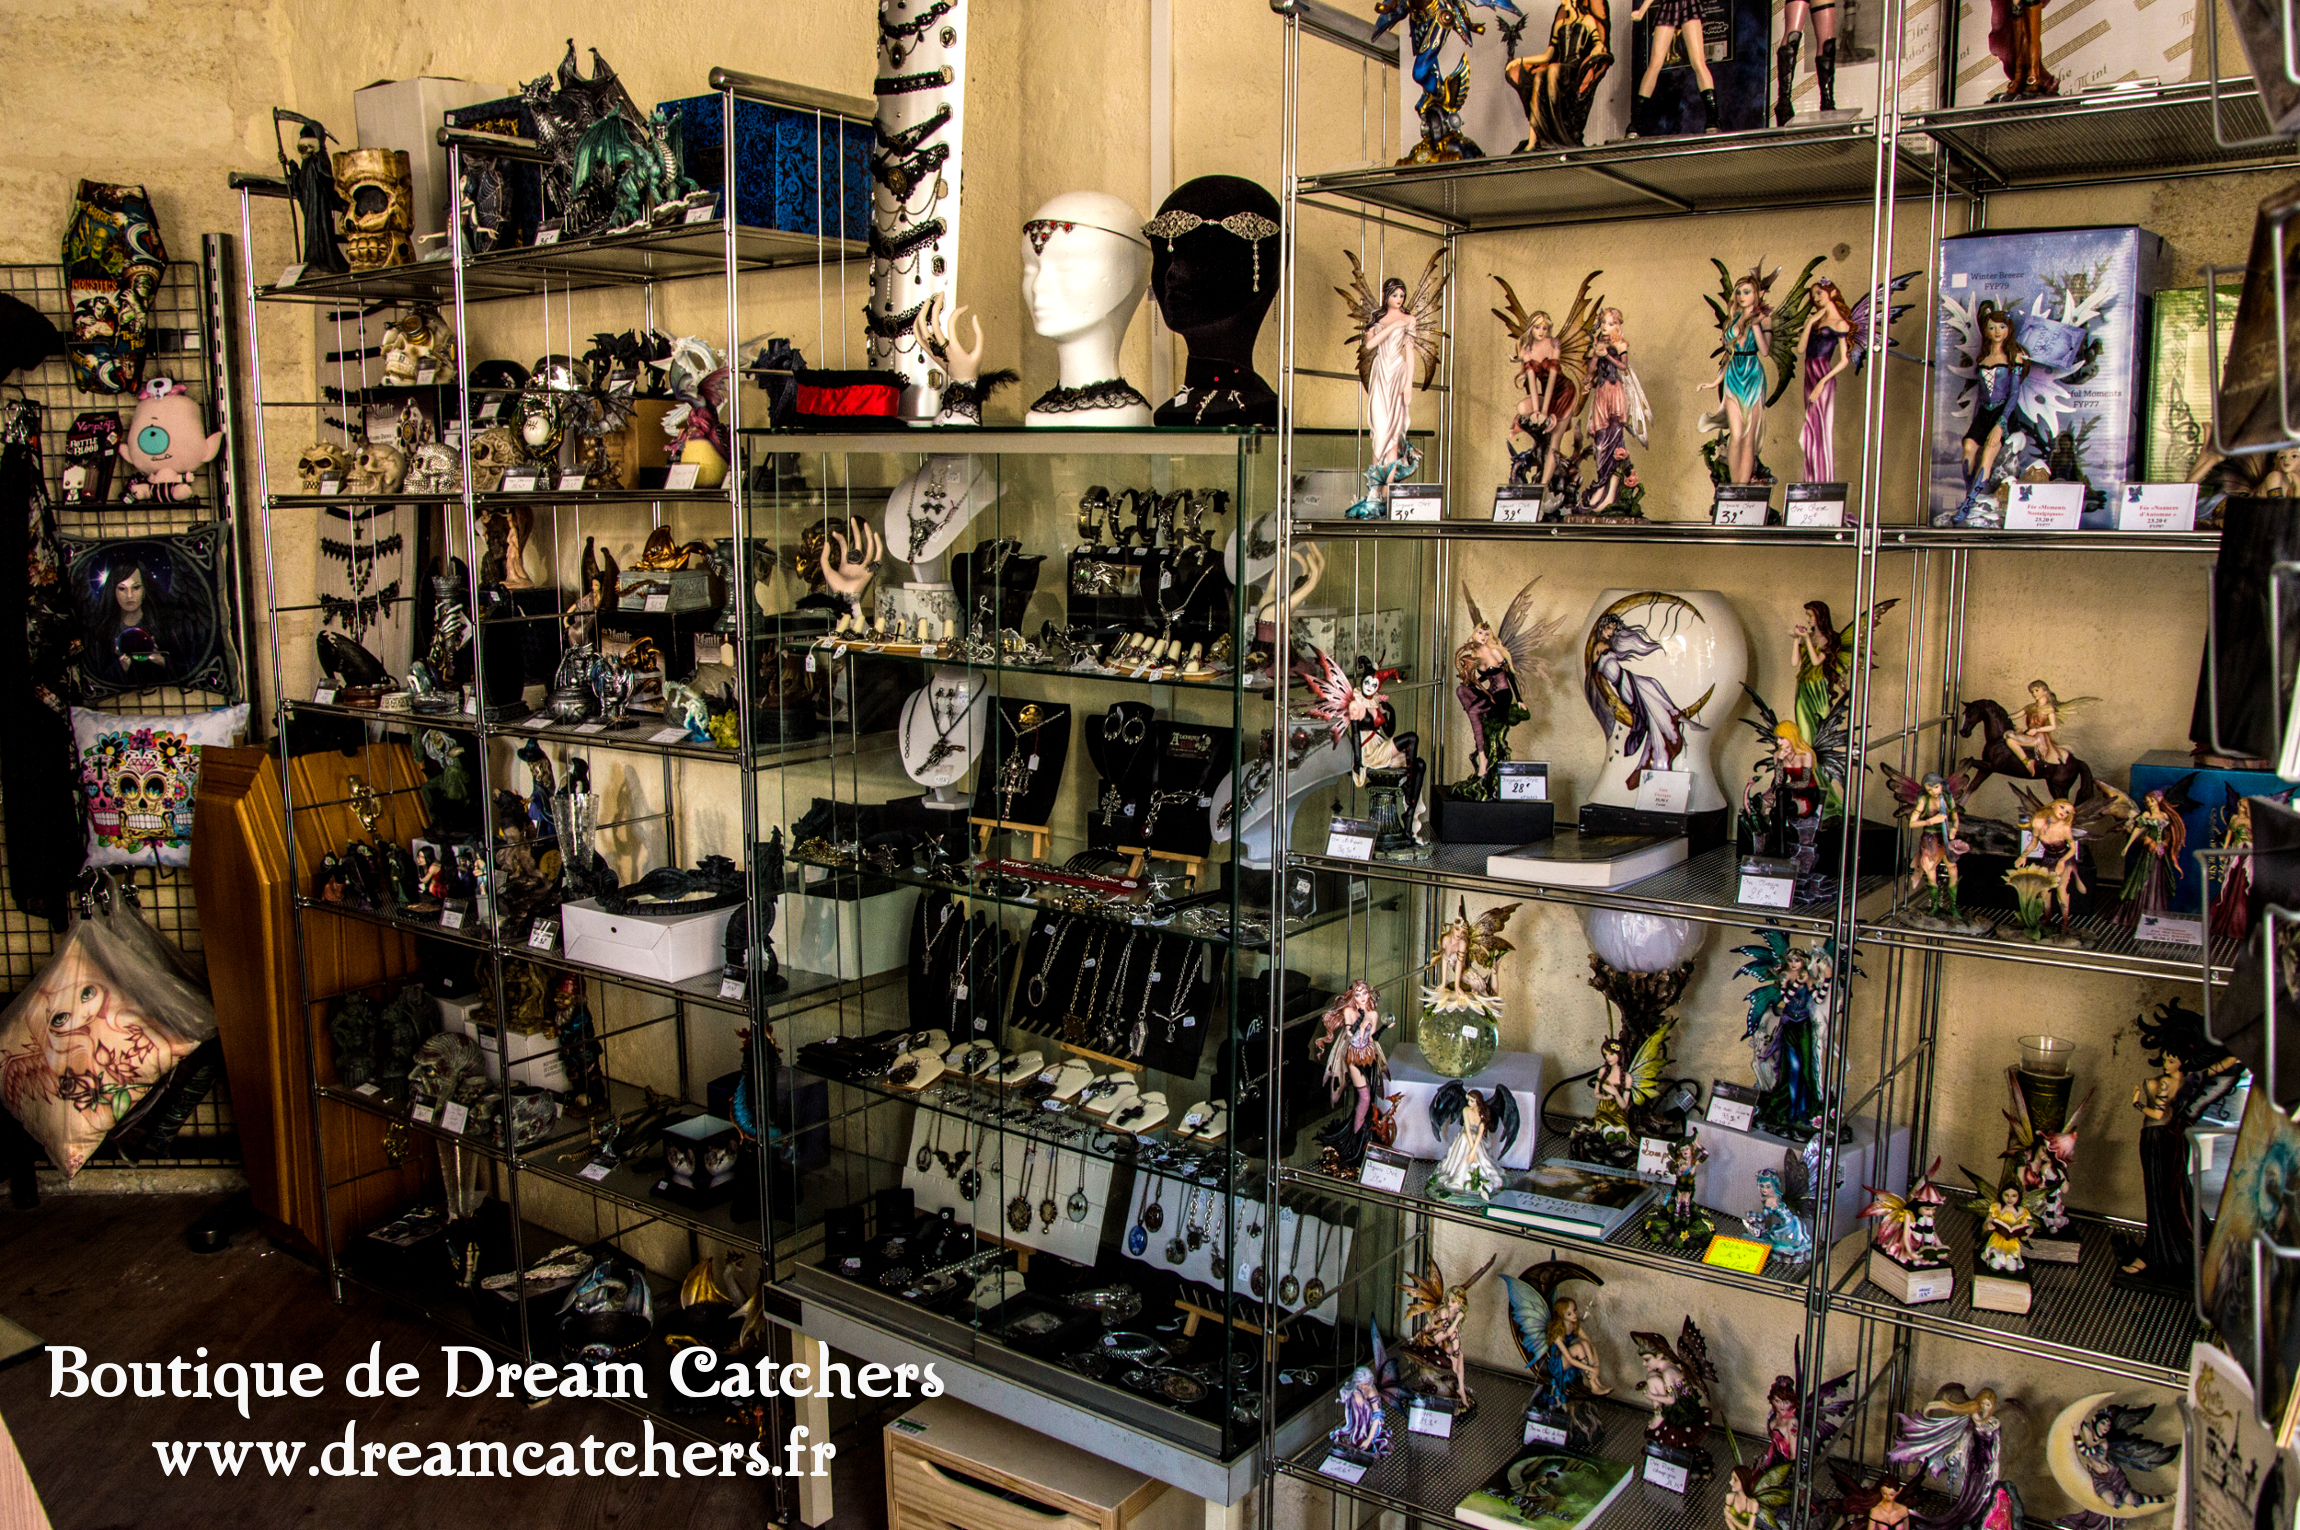 La boutique de Dream Catchers : rayon figurines